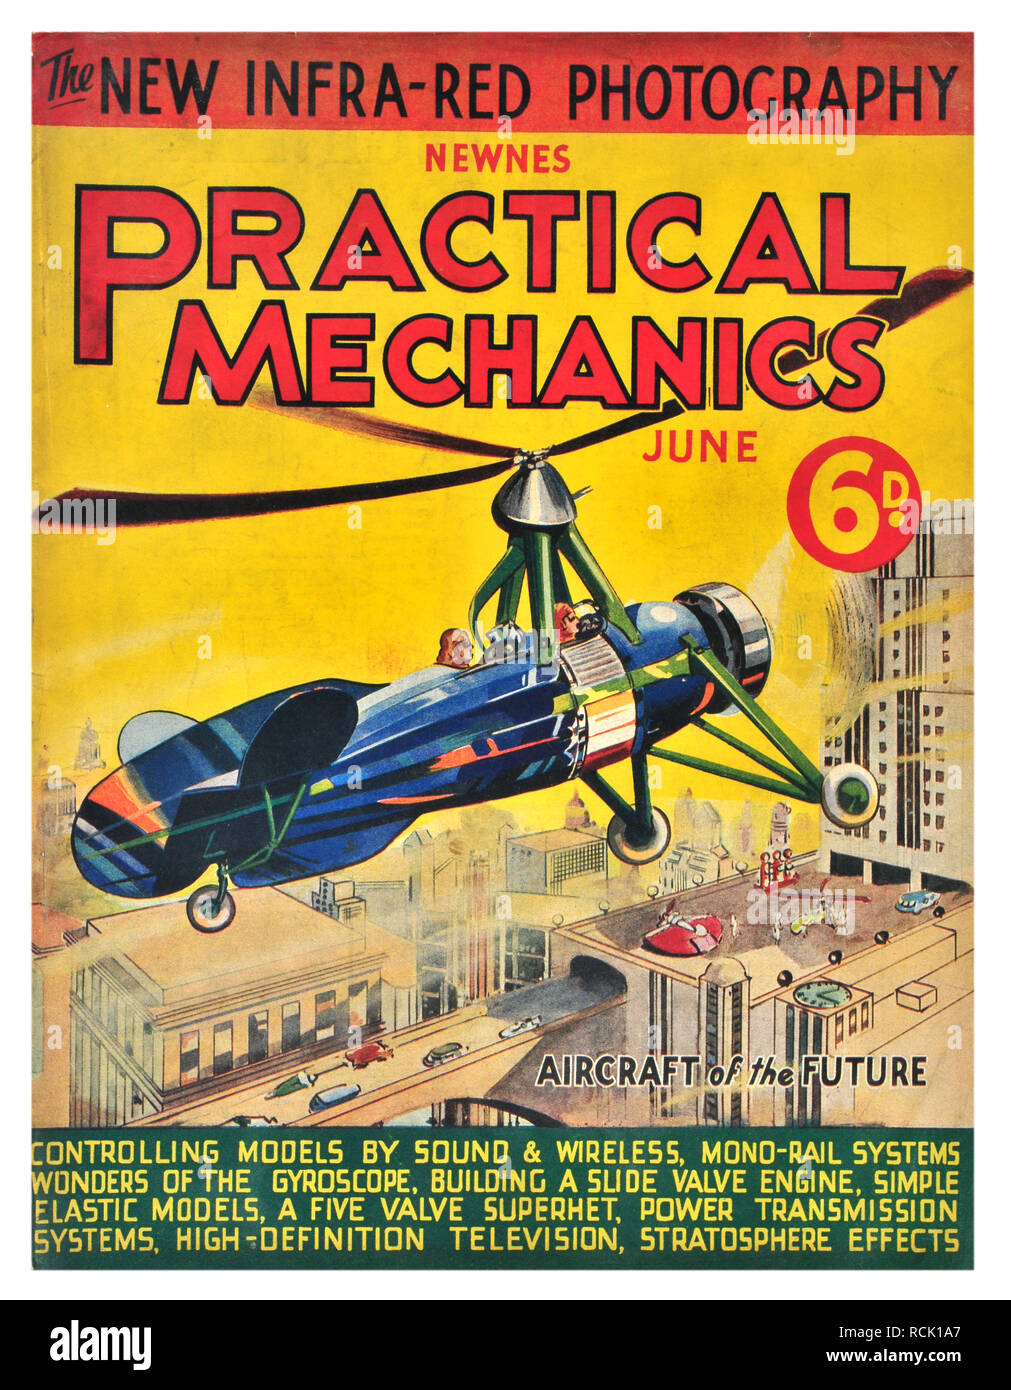 Newnes practical mechanics June costing 6D aircraft of the future - Stock Image